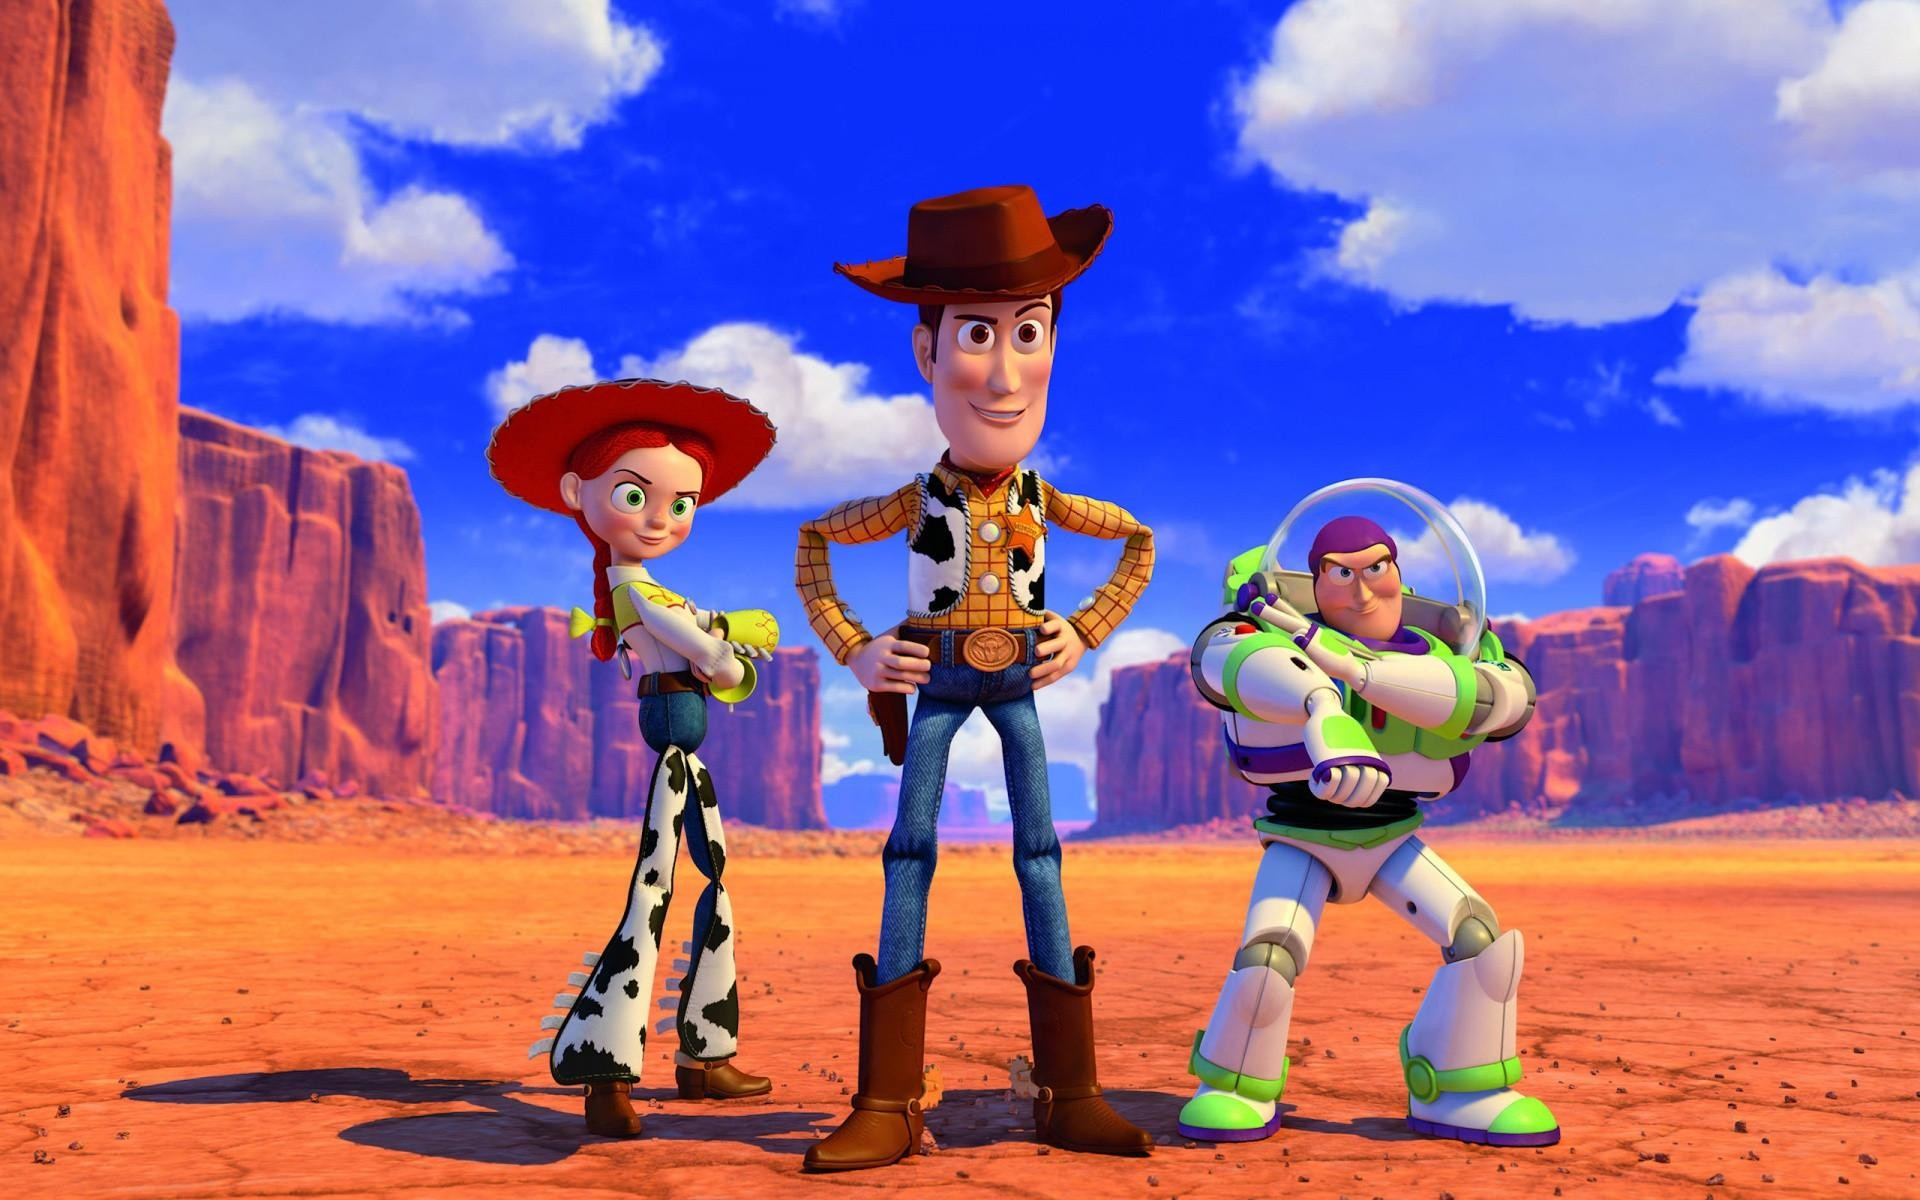 toy story wallpaper for desktop 55 images